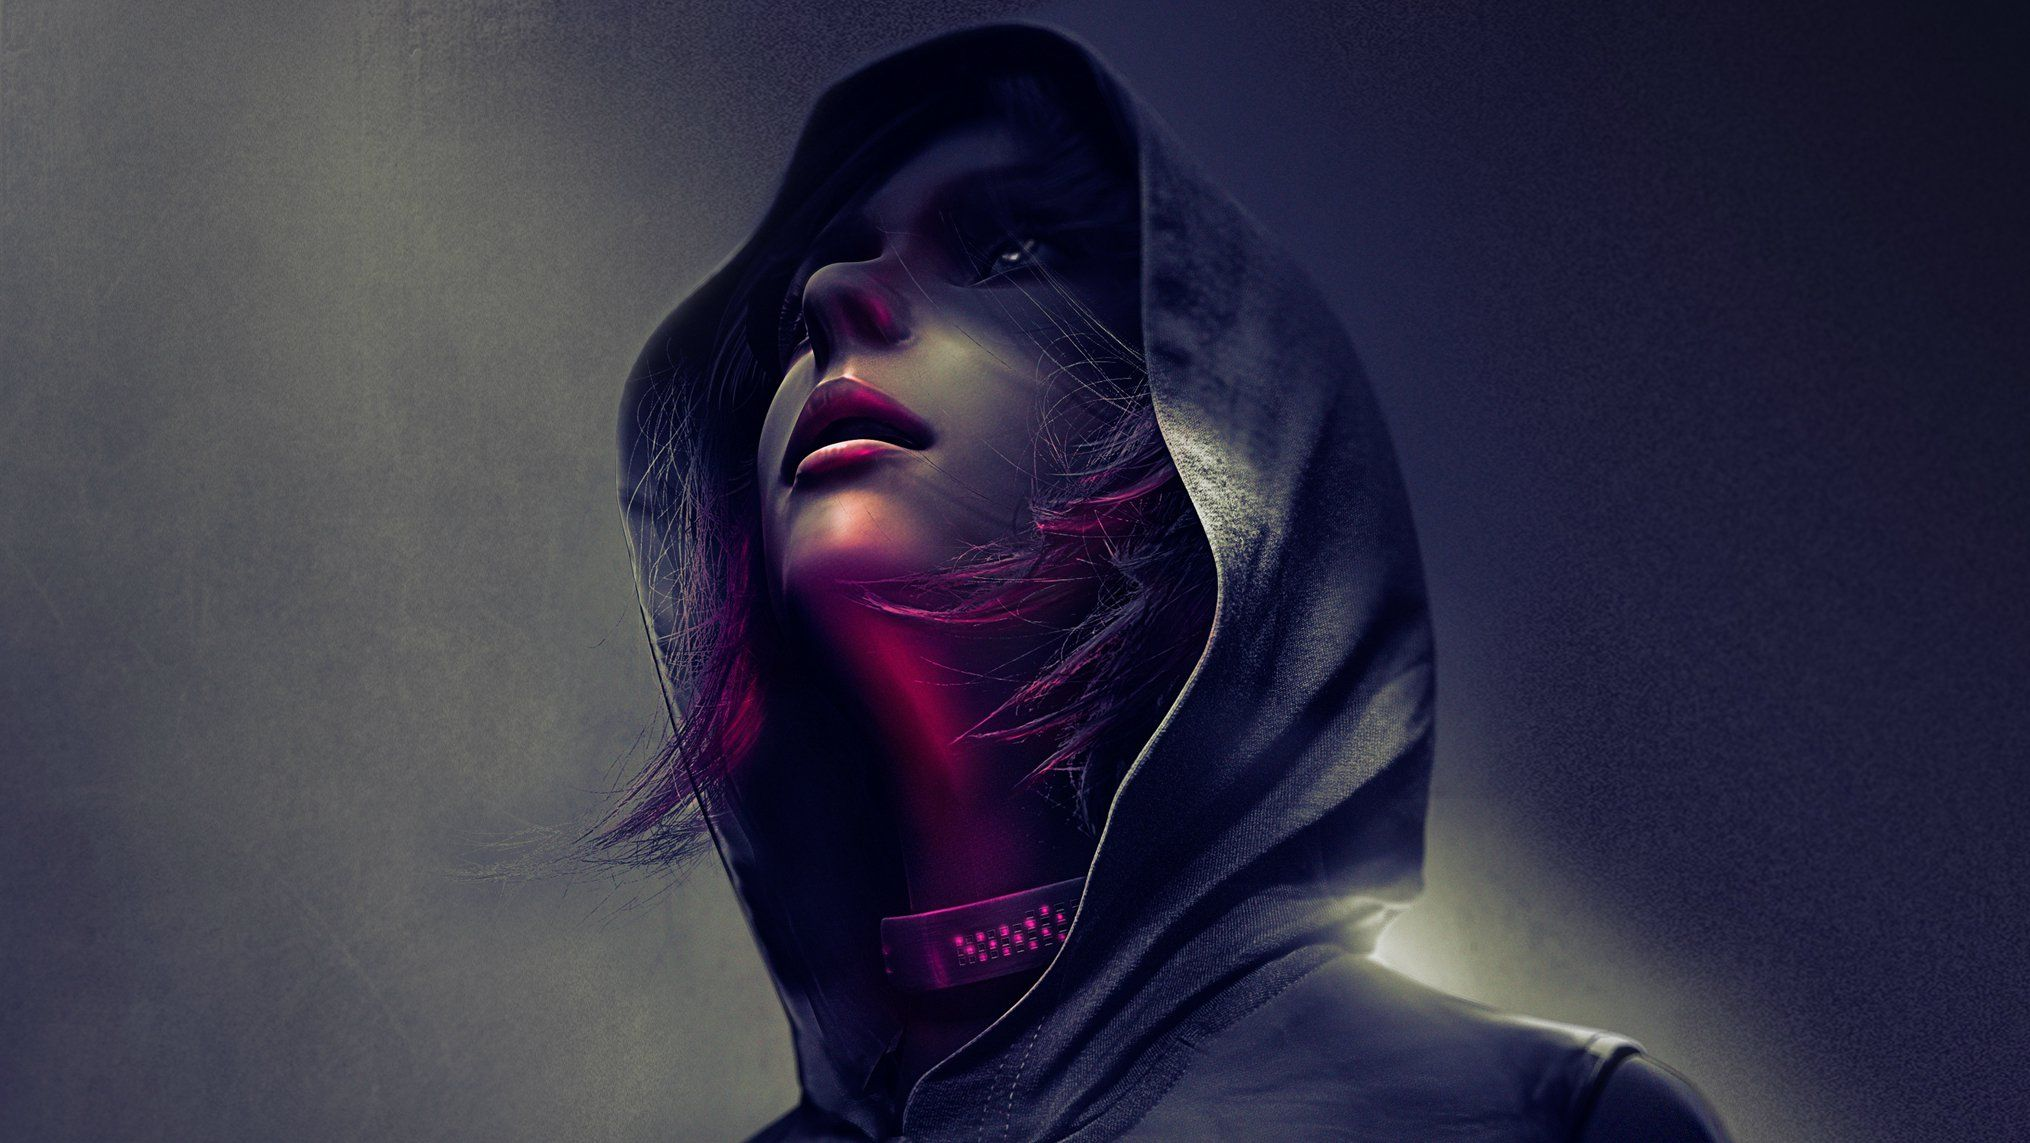 Review Republique Remastered (With images) Adventure